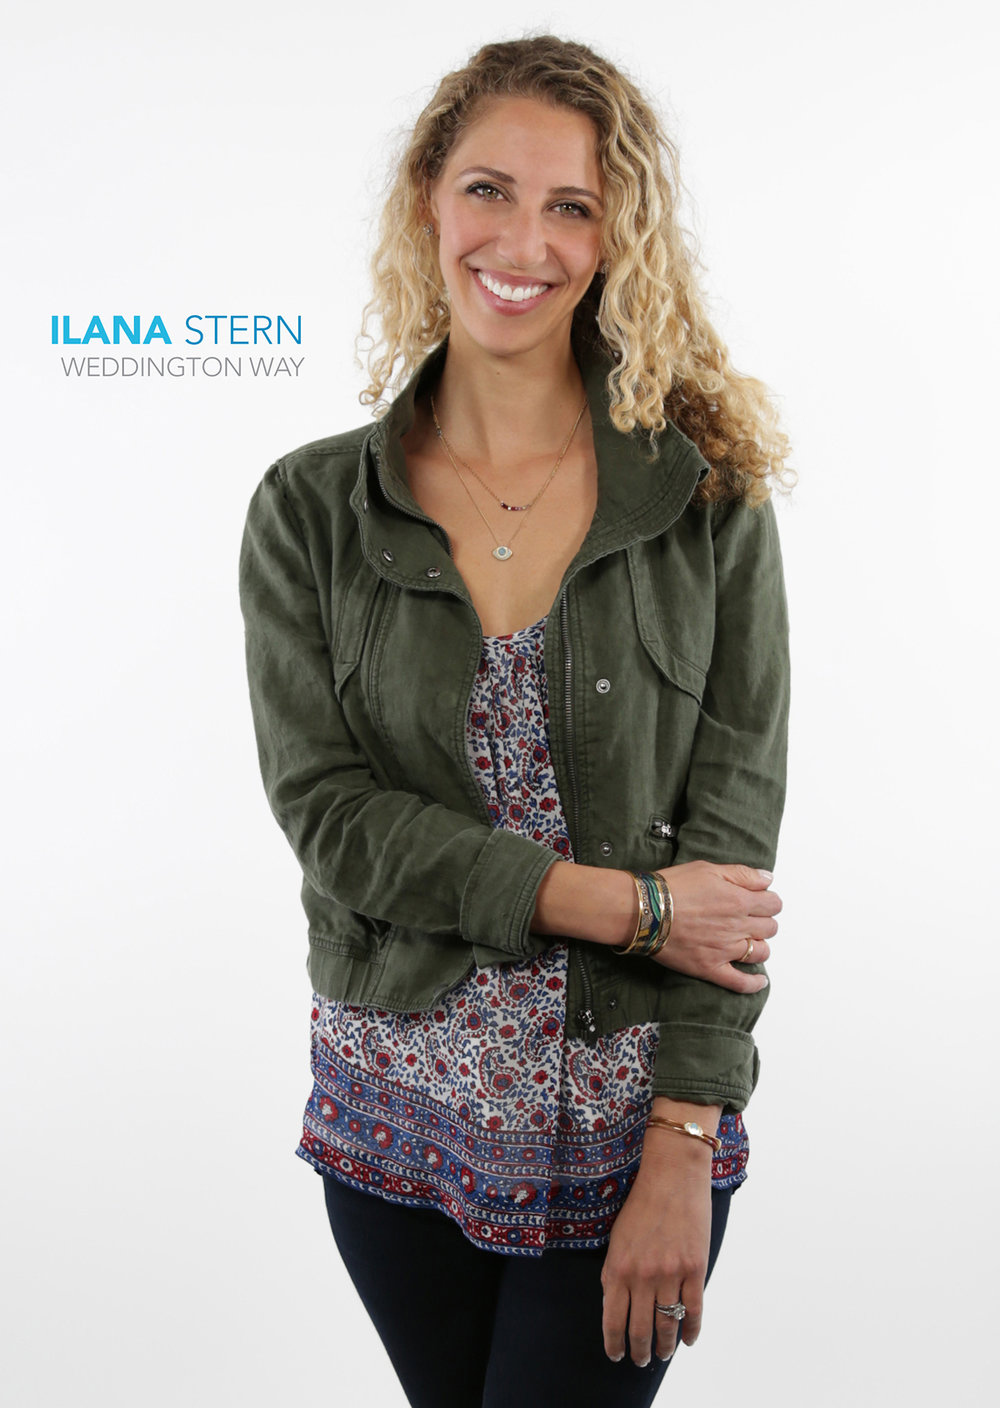 Ilana Stern Gap Inc. Weddington Way founder